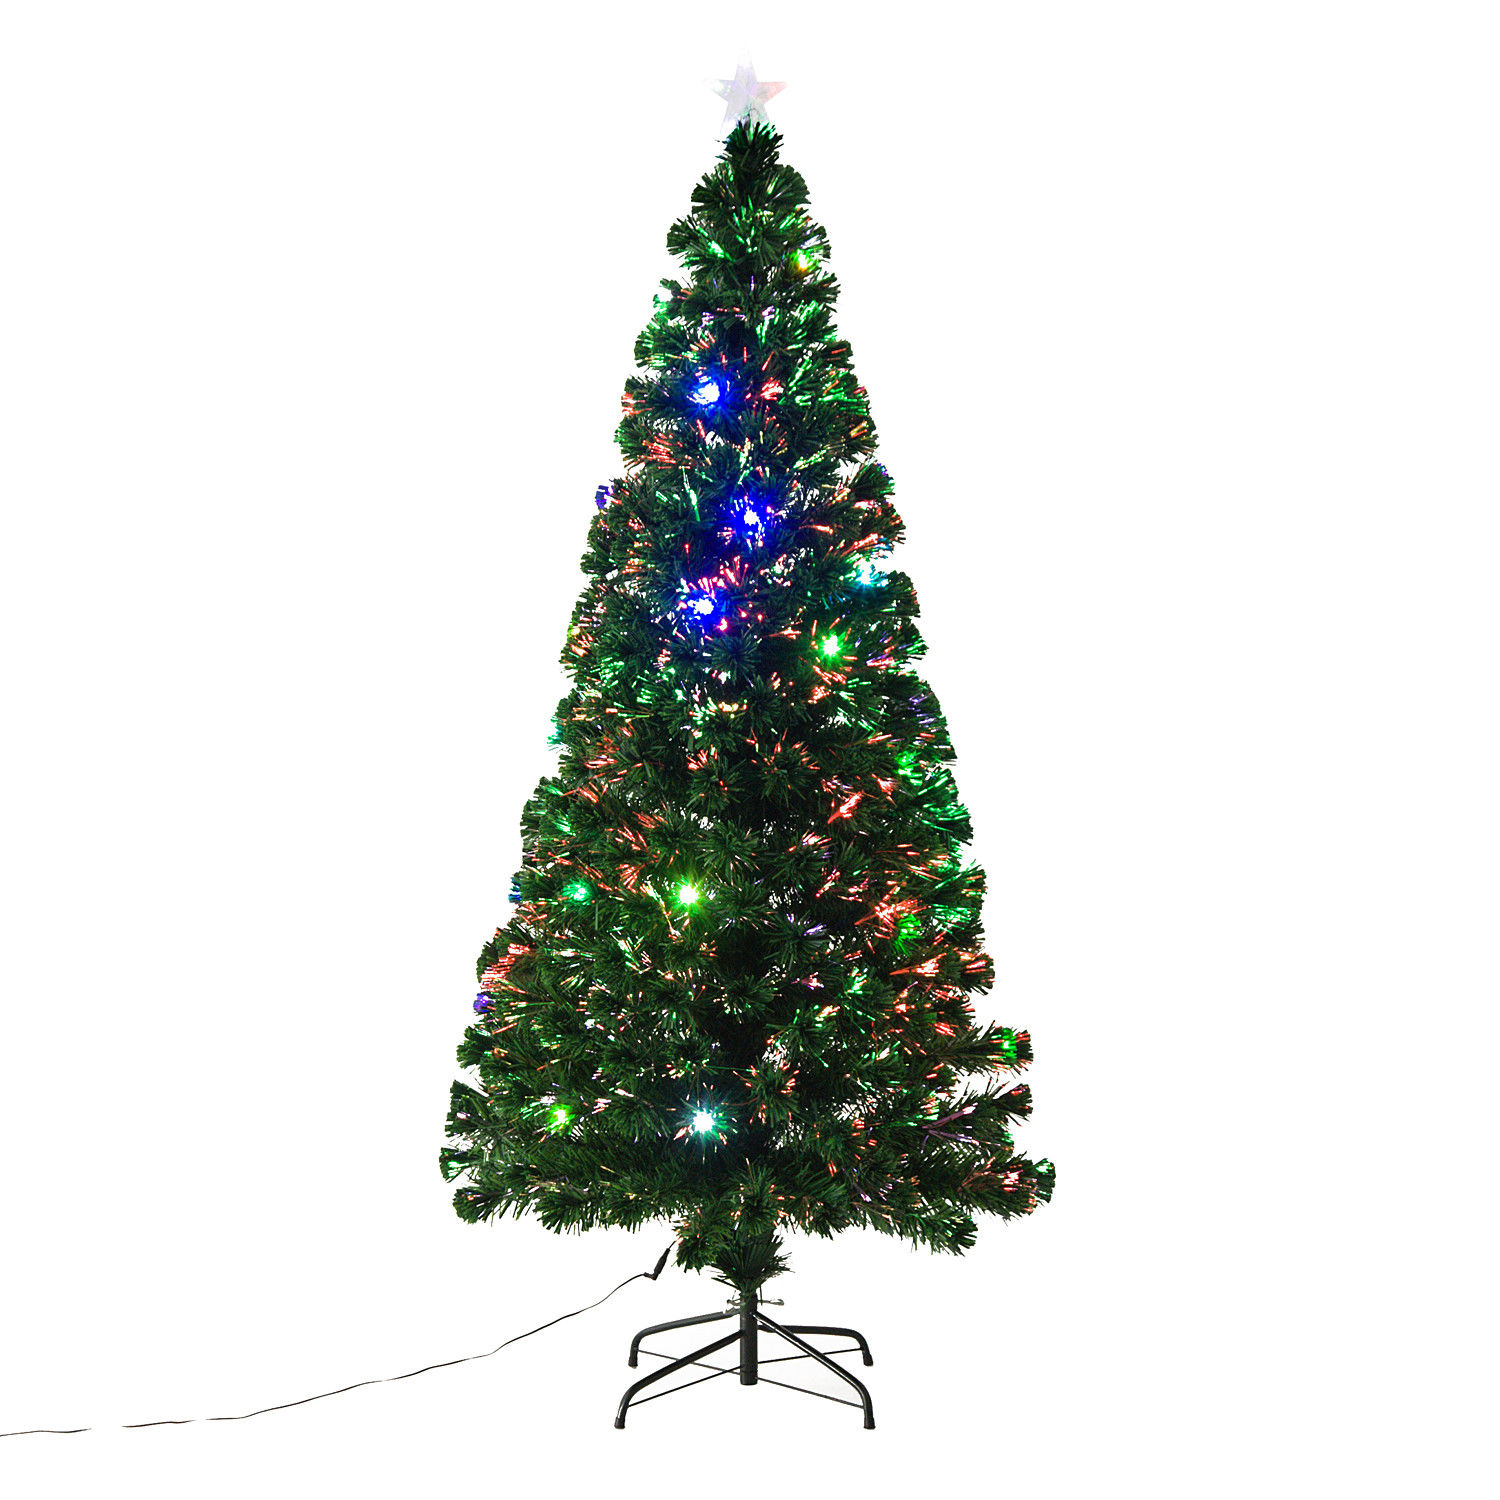 HOMCOM 6 ft Tall Artificial Fiber Optic LED Pre-Lit Holiday Christmas Tree